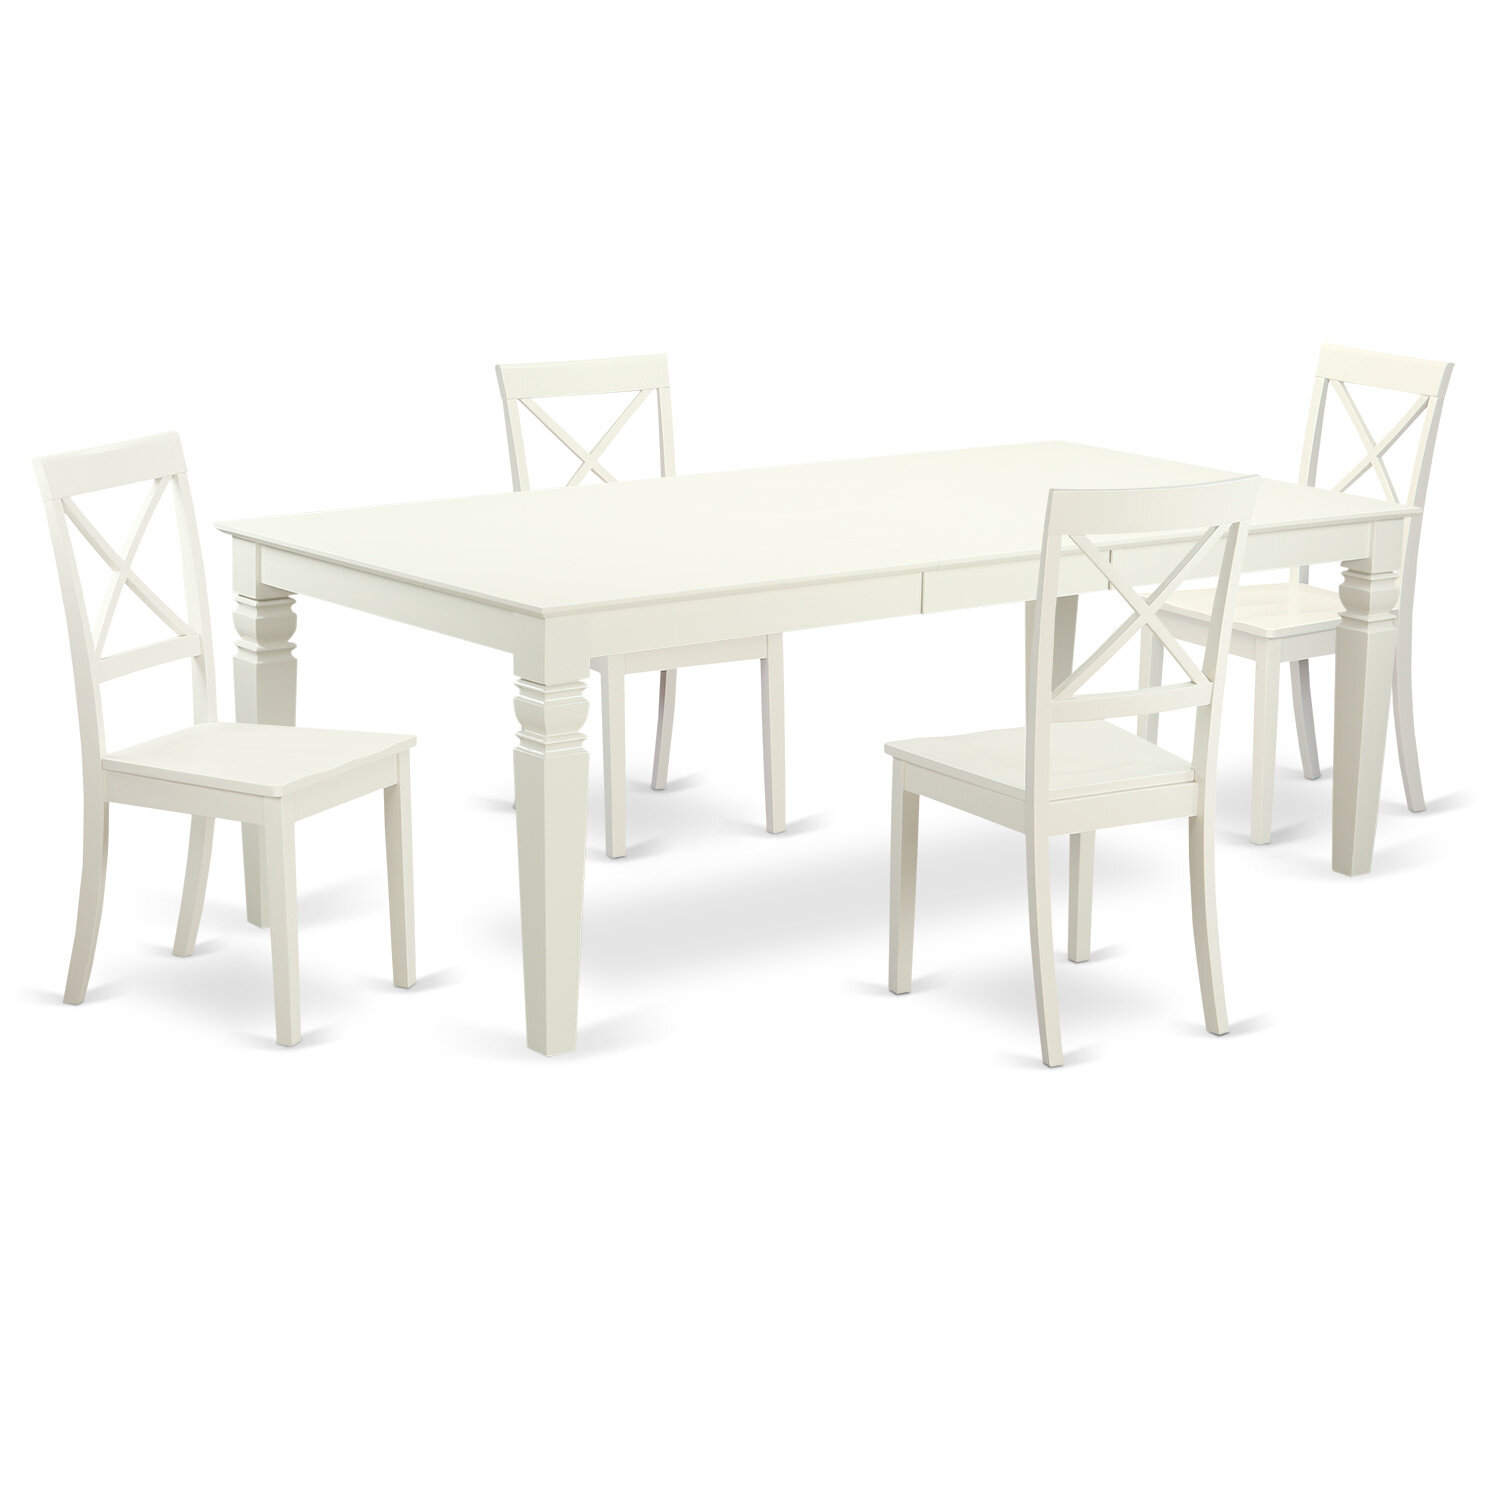 Darby Home Co Wimbish 5 Piece Butterfly Leaf Solid Wood Dining Set Wayfair